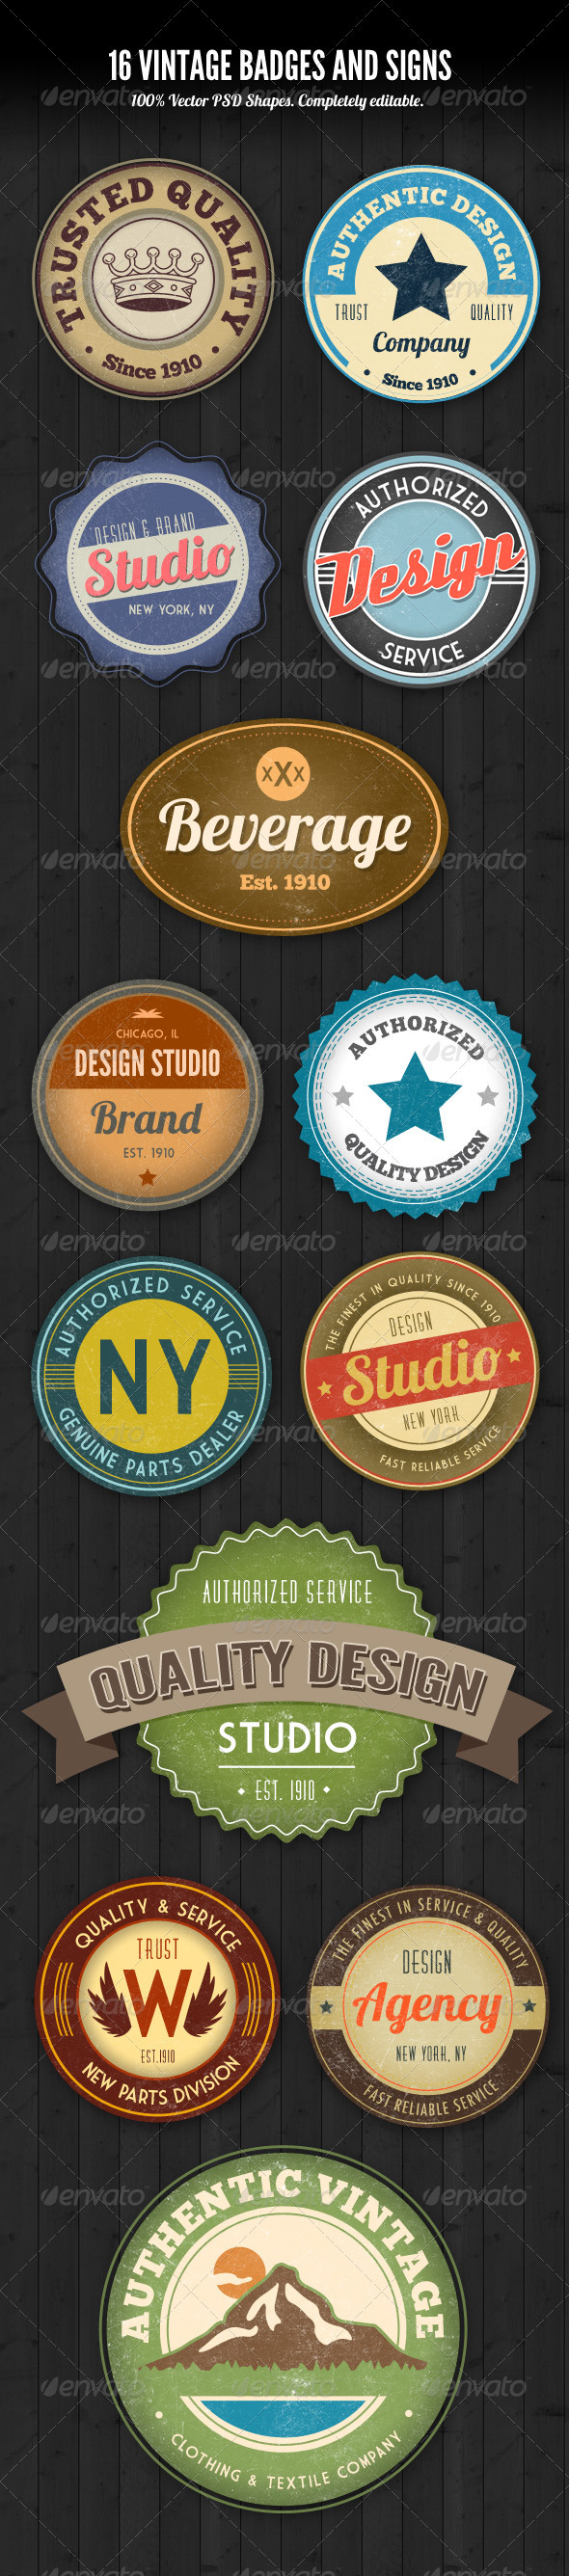 PSD Vintage Style Badges and Logos  - Badges & Stickers Web Elements